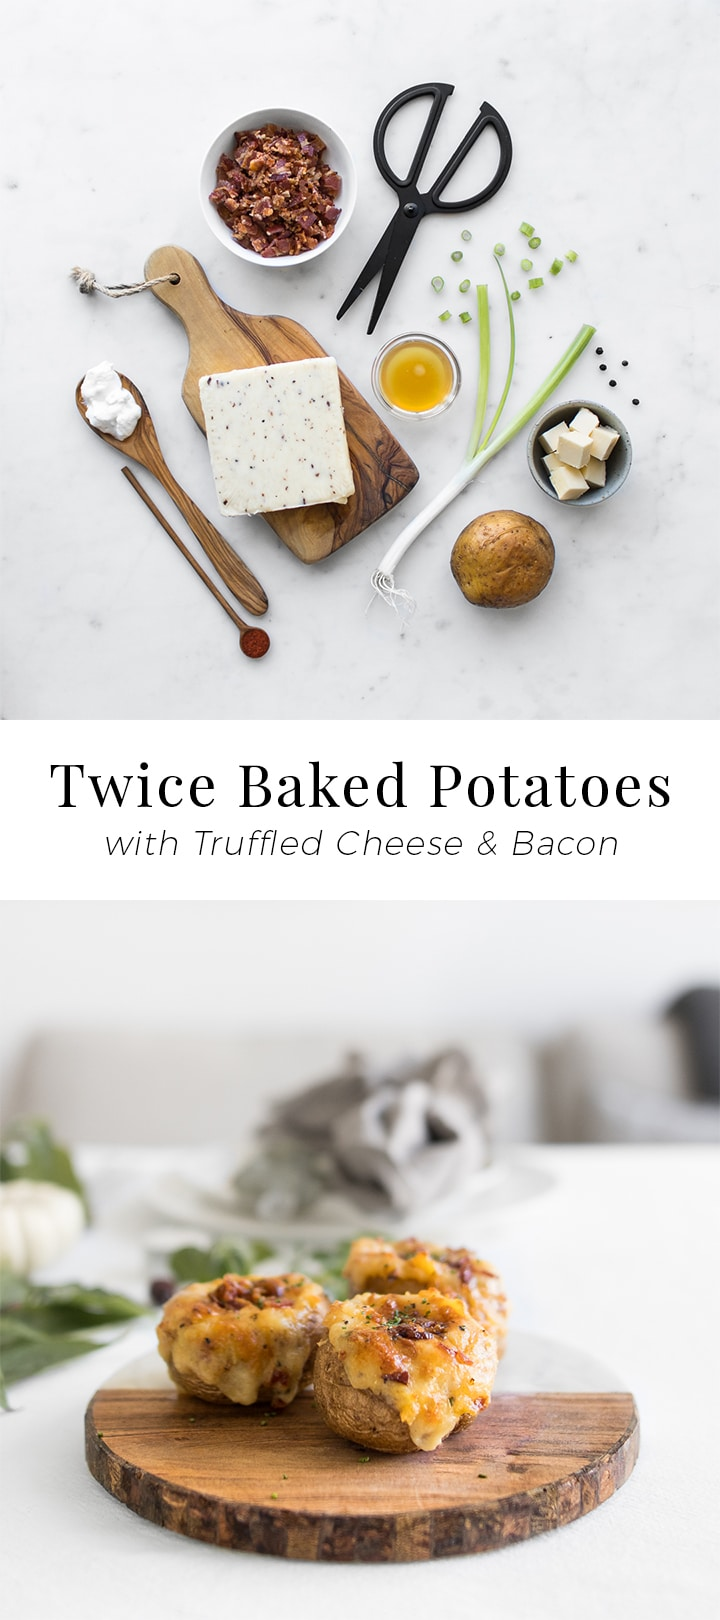 Twice Baked Potatoes are what Thanksgiving dreams are made of. They are the ultimate combination of all your favourite potato fixings mixed together in a simple to prepare, simple to serve, and simple to eat Thanksgiving accompaniment.